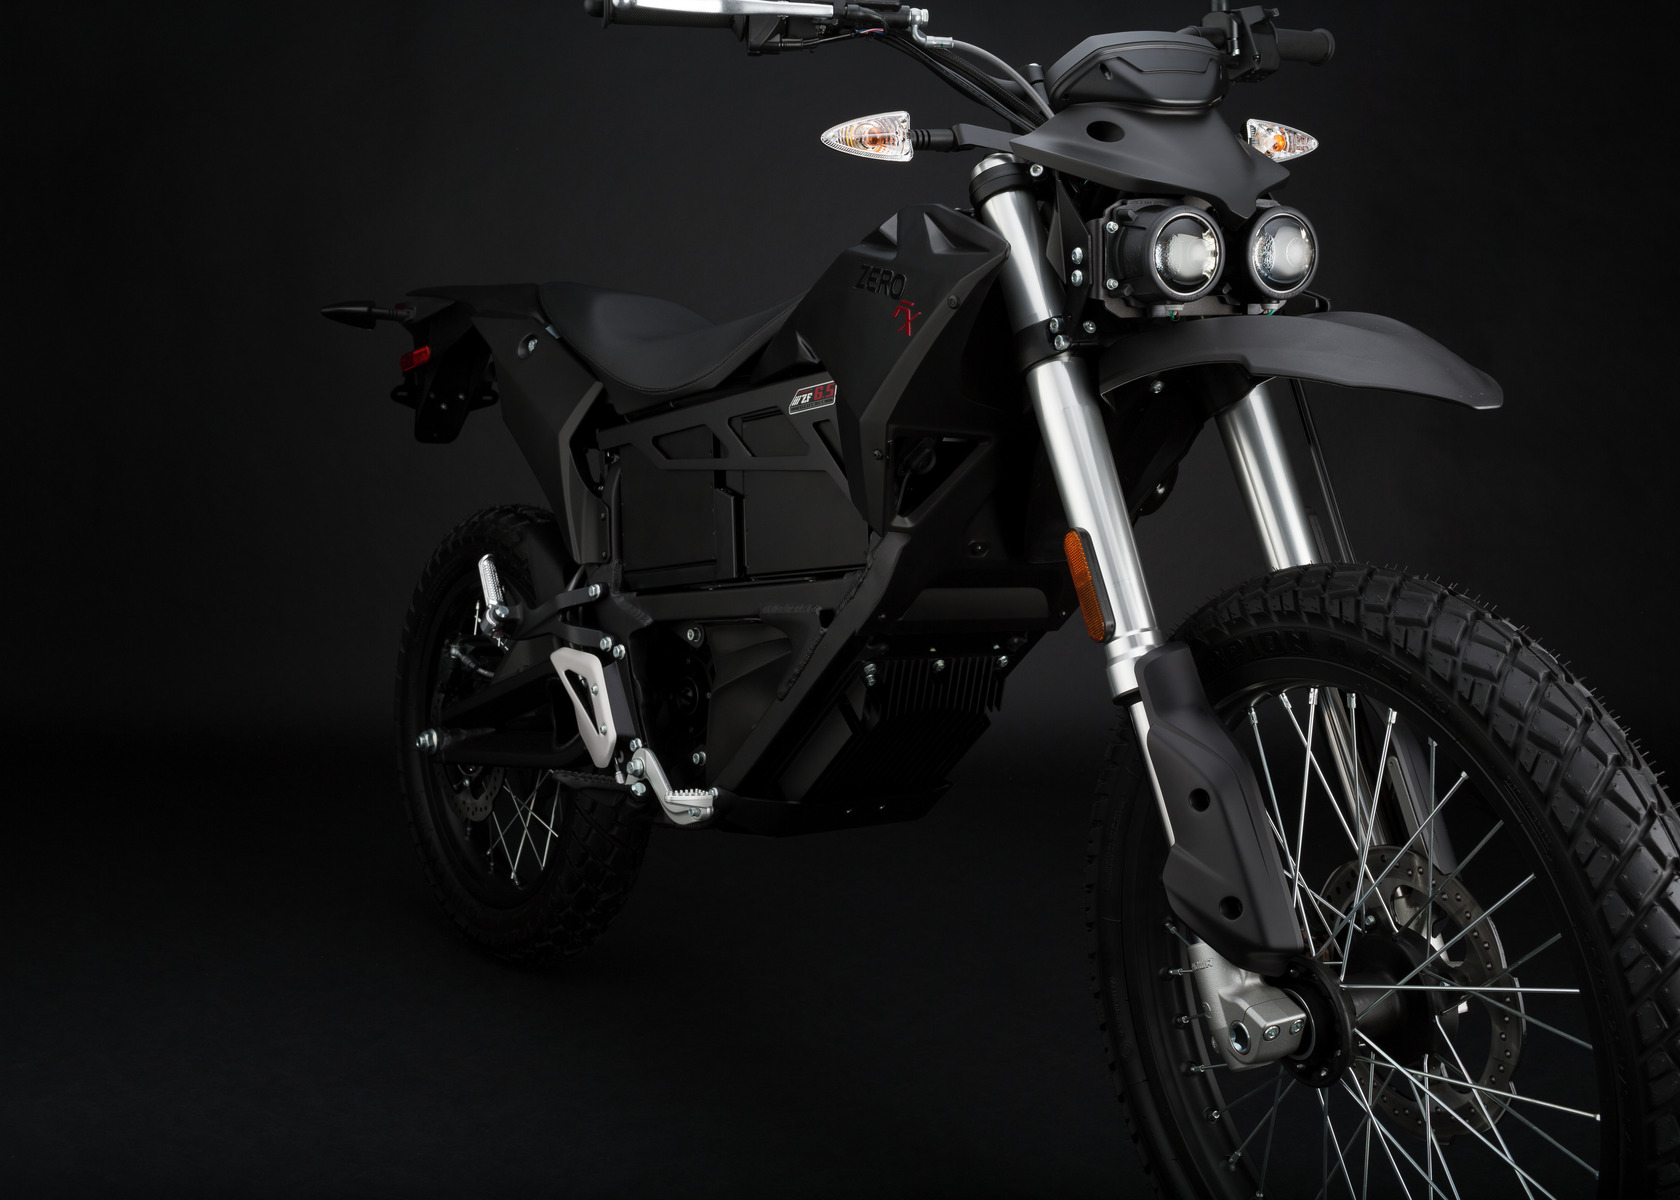 2016 Zero FX Electric Motorcycle: Front Fork